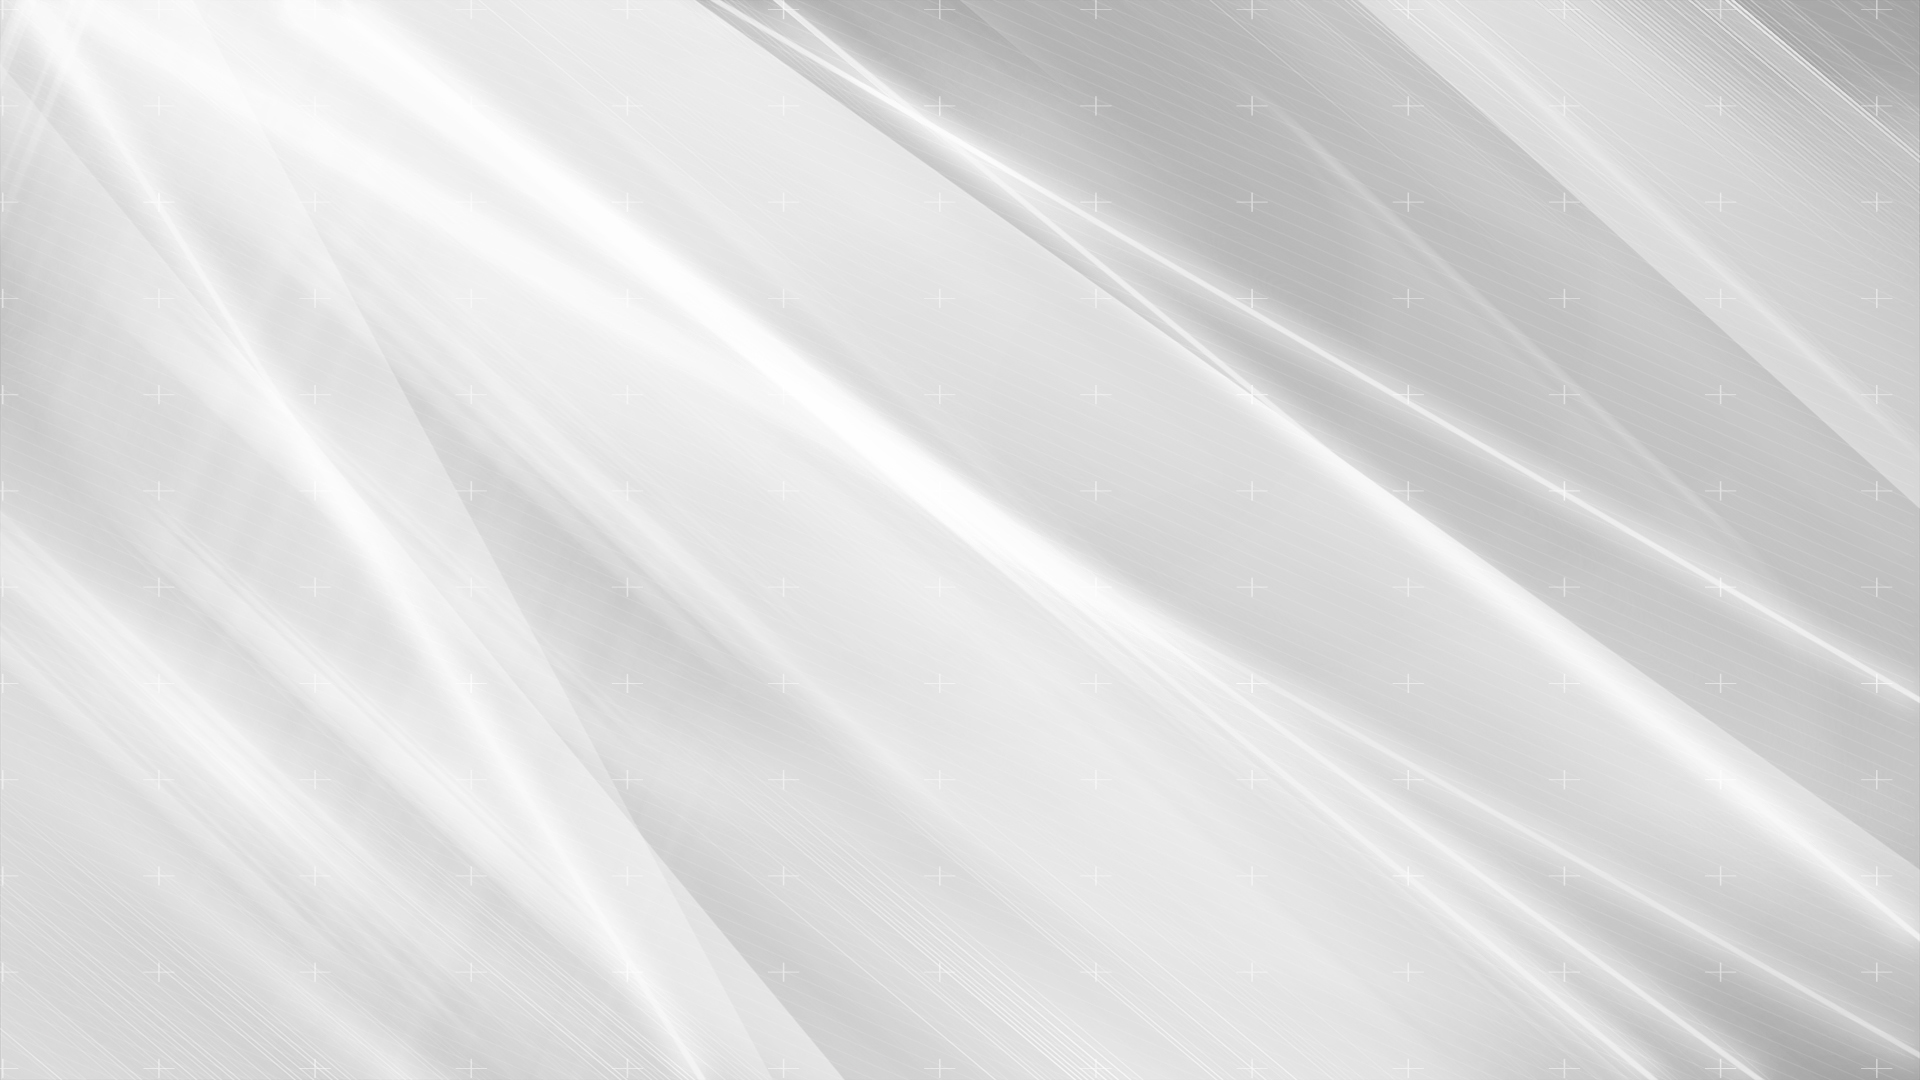 White Abstract Widescreen